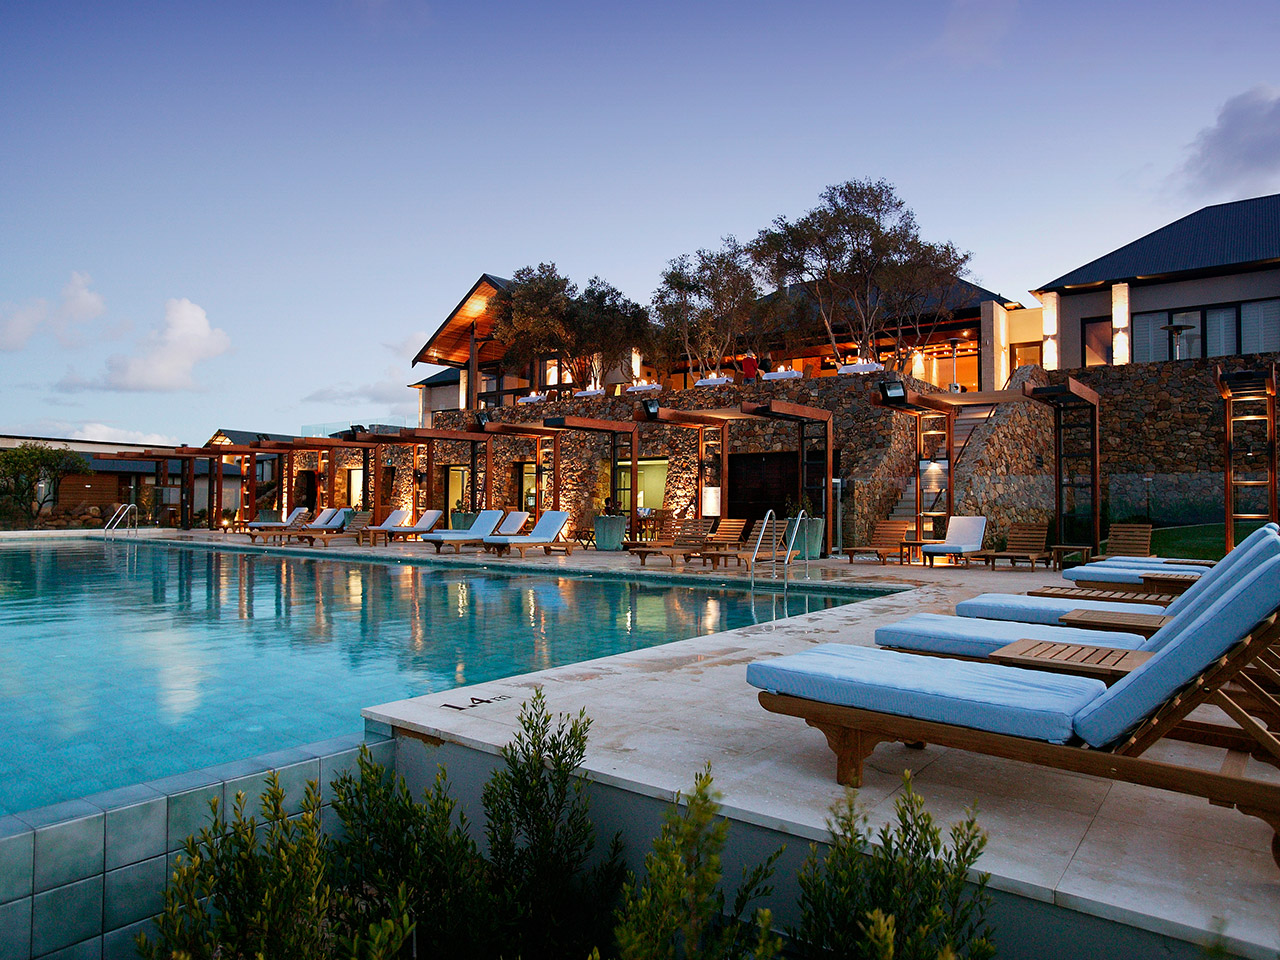 Hotel Building And Swimming Pool At Dusk.